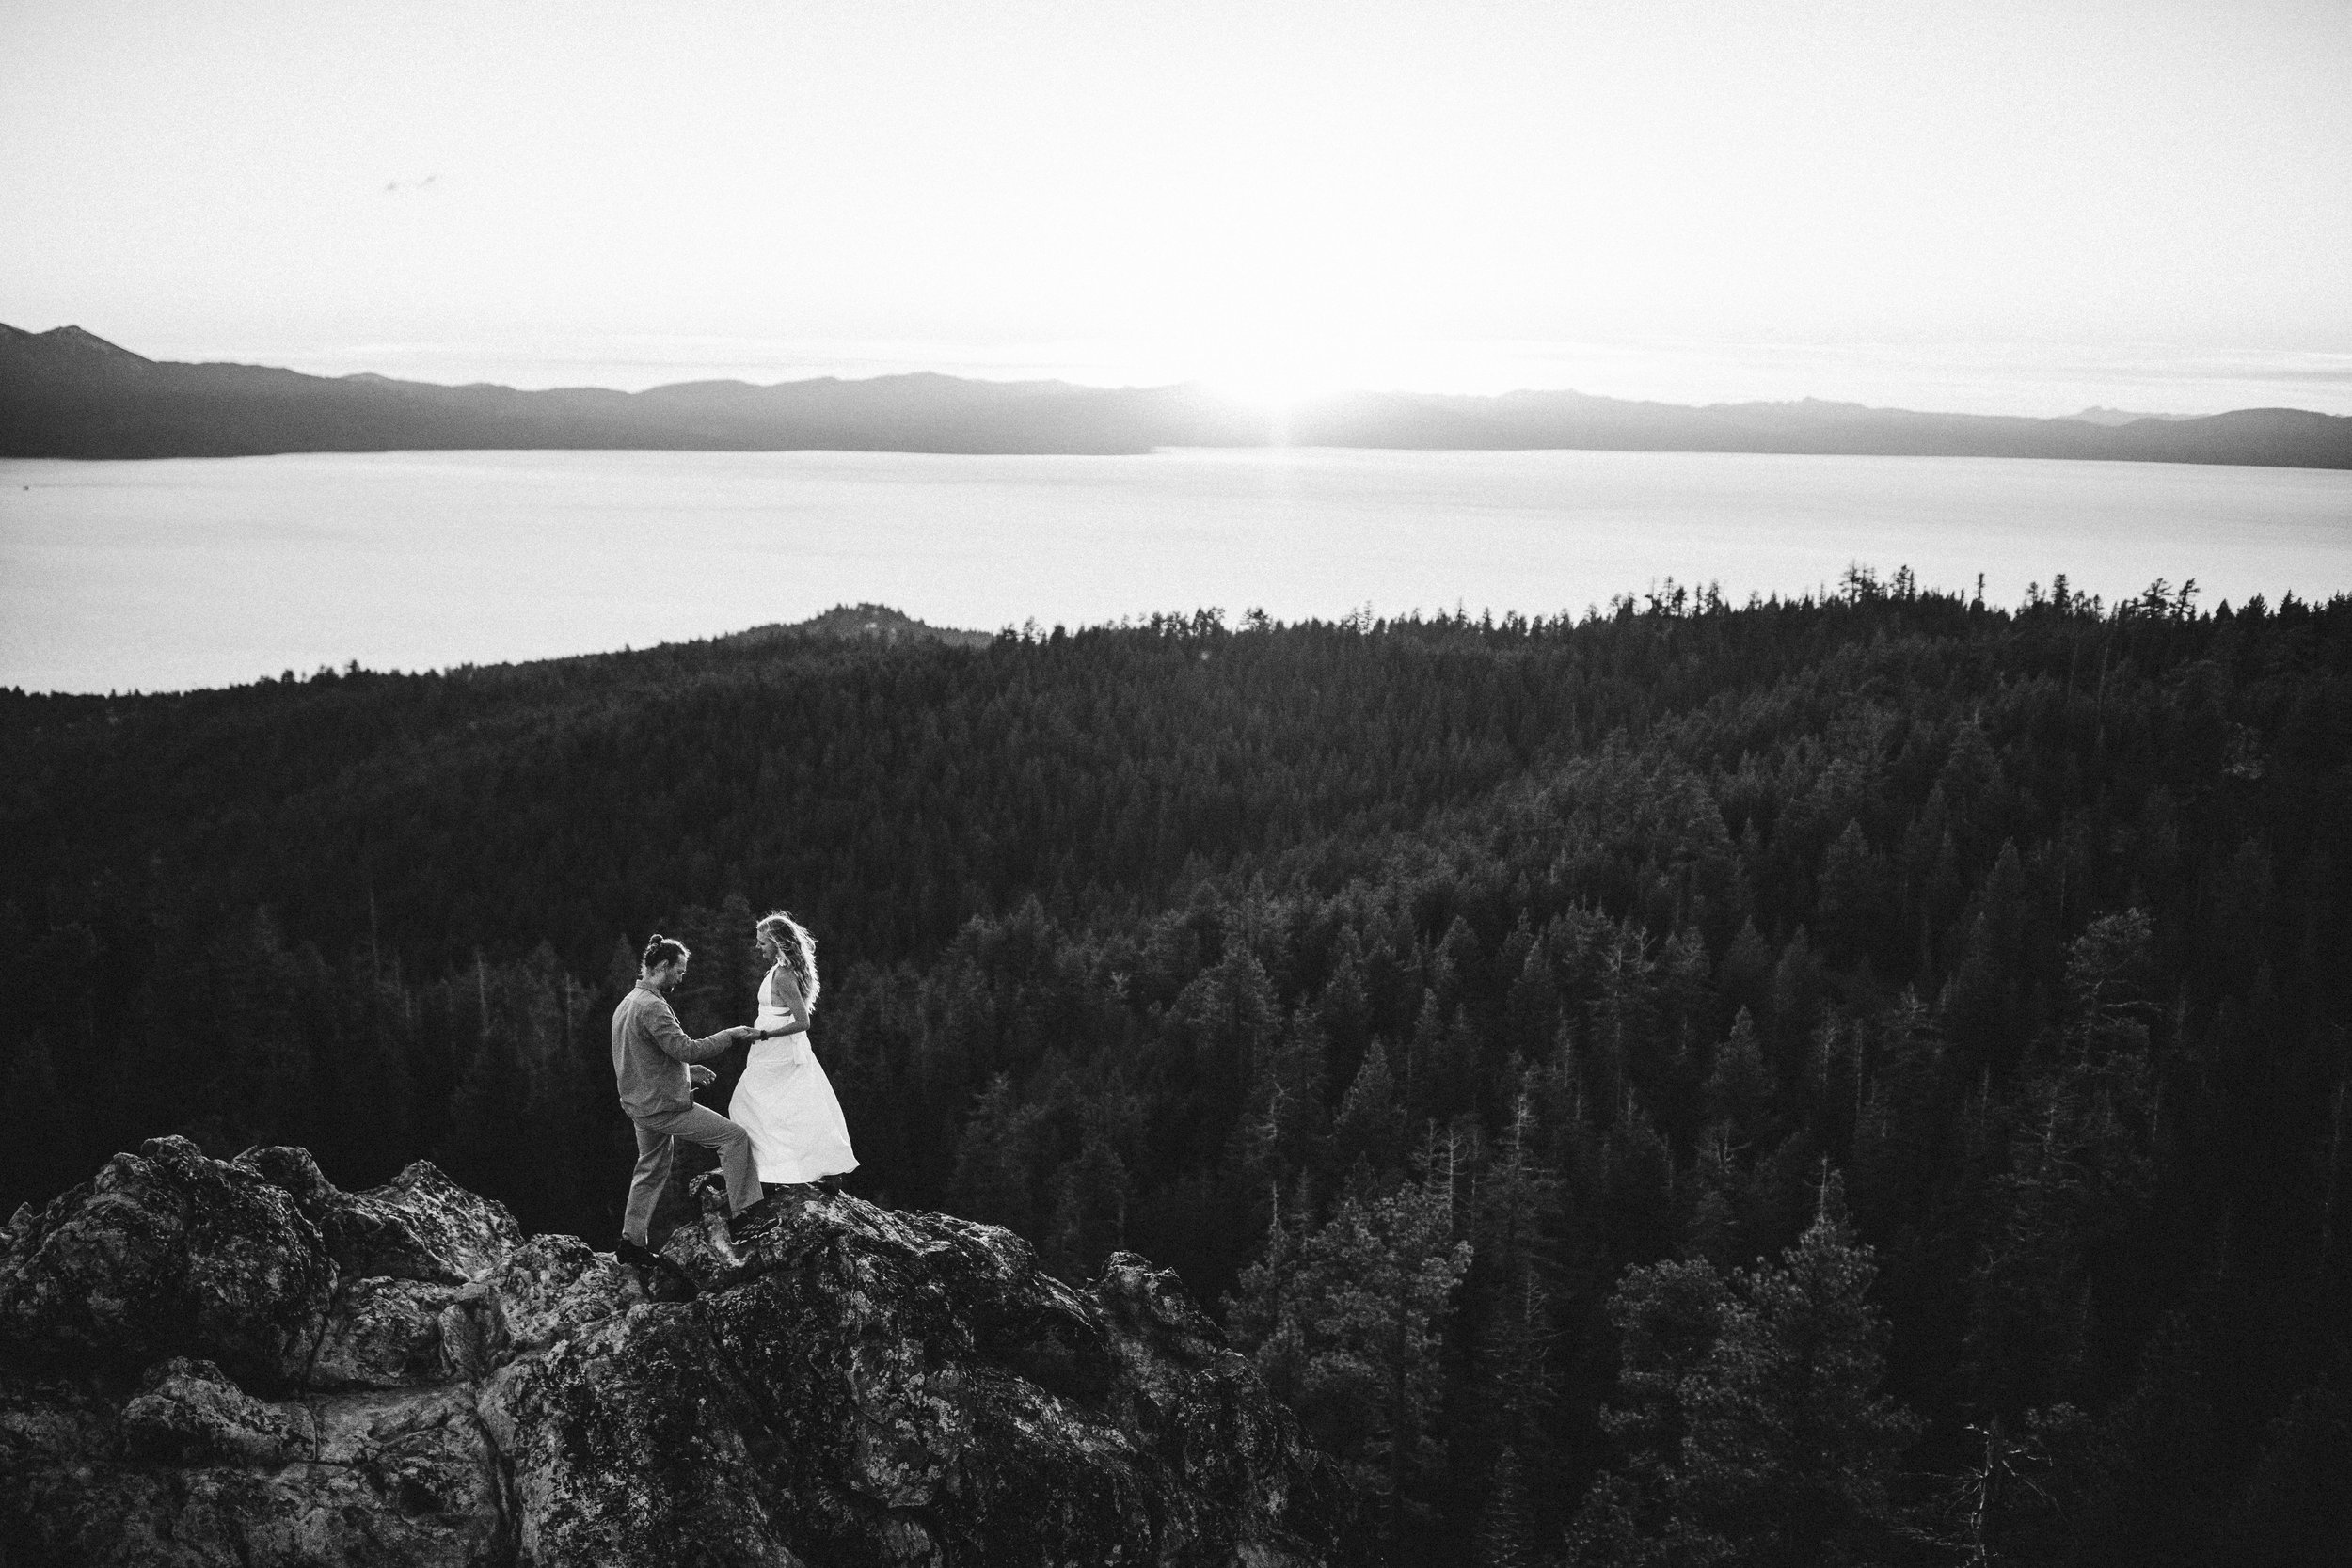 _P8A0904vildphotography-adventurewedding-adventurouswedding-laketahoe-laketahoewedding-weddingphotographer-laketahoeweddingphotographer-adventurouscouples-carl-tiffiny.jpg